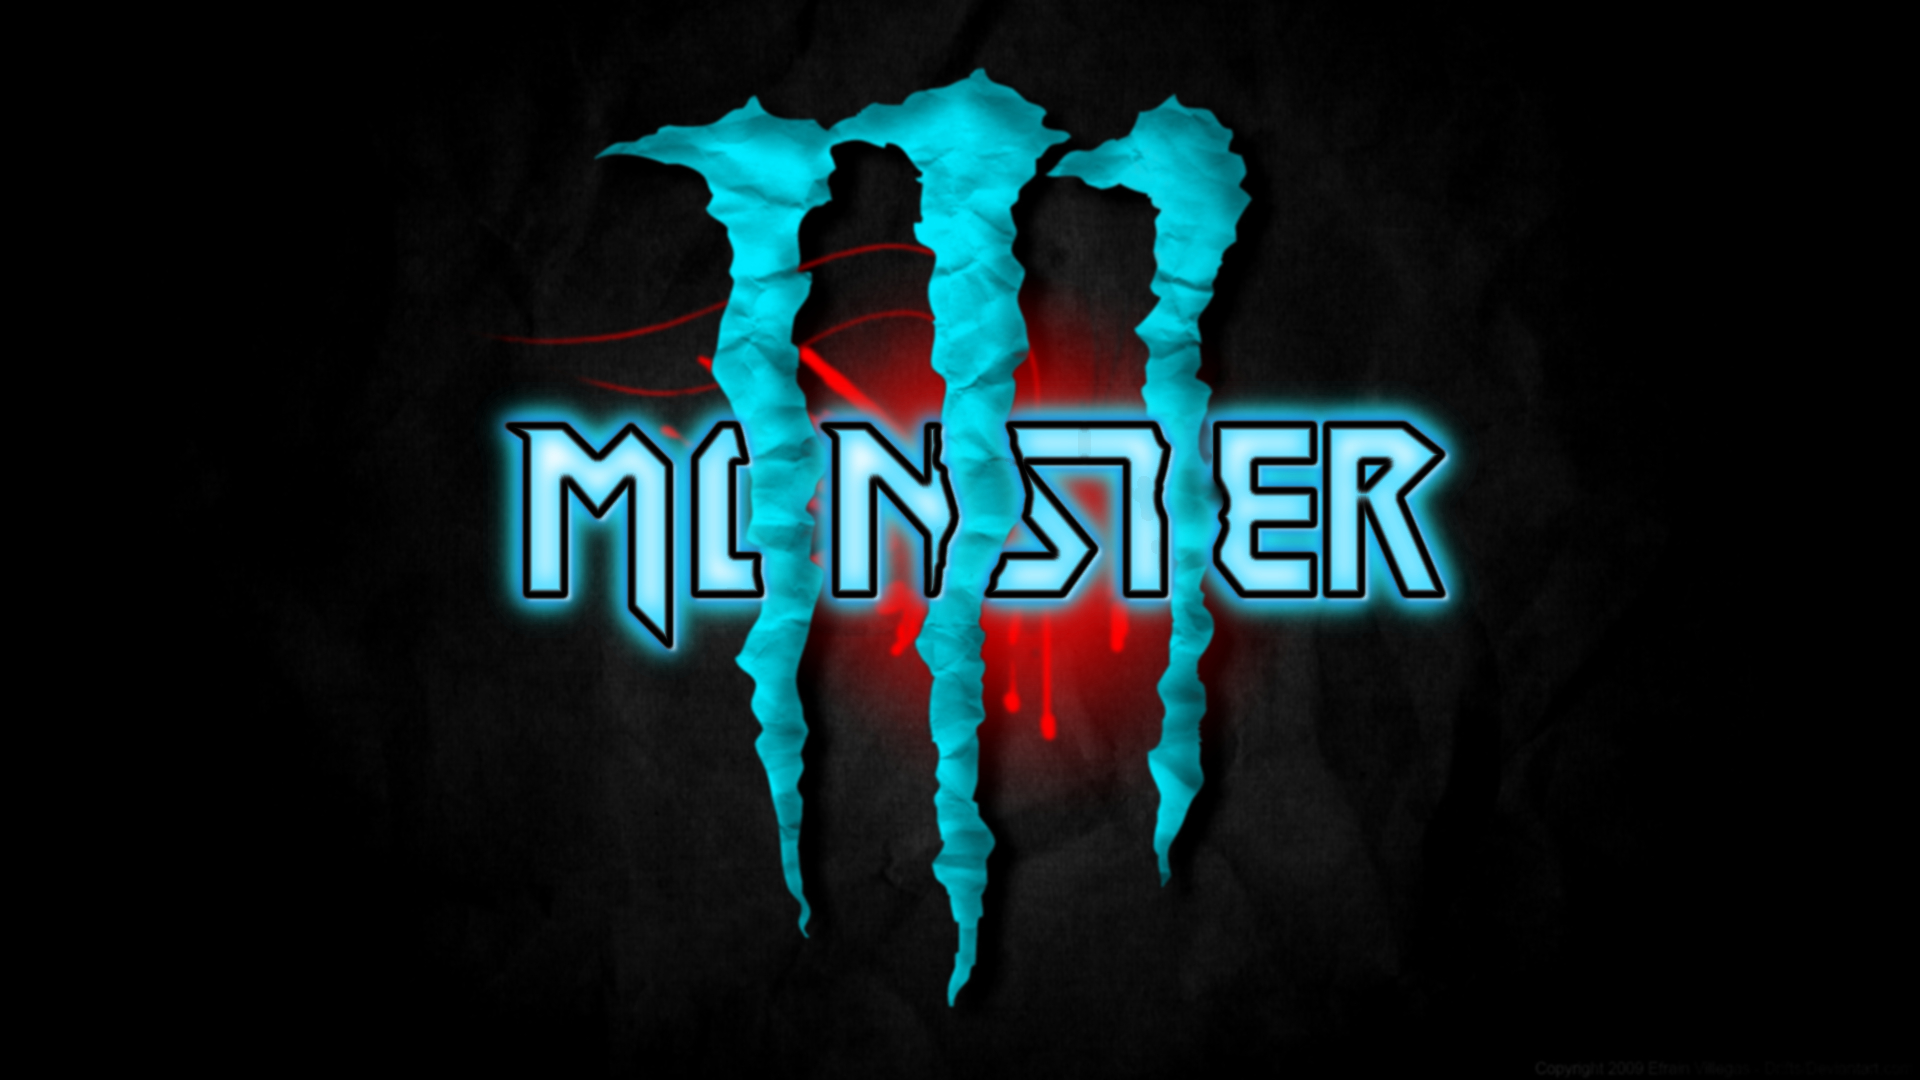 Monster Energy HD Wallpaper 1920x1080 ImageBankbiz 1920x1080